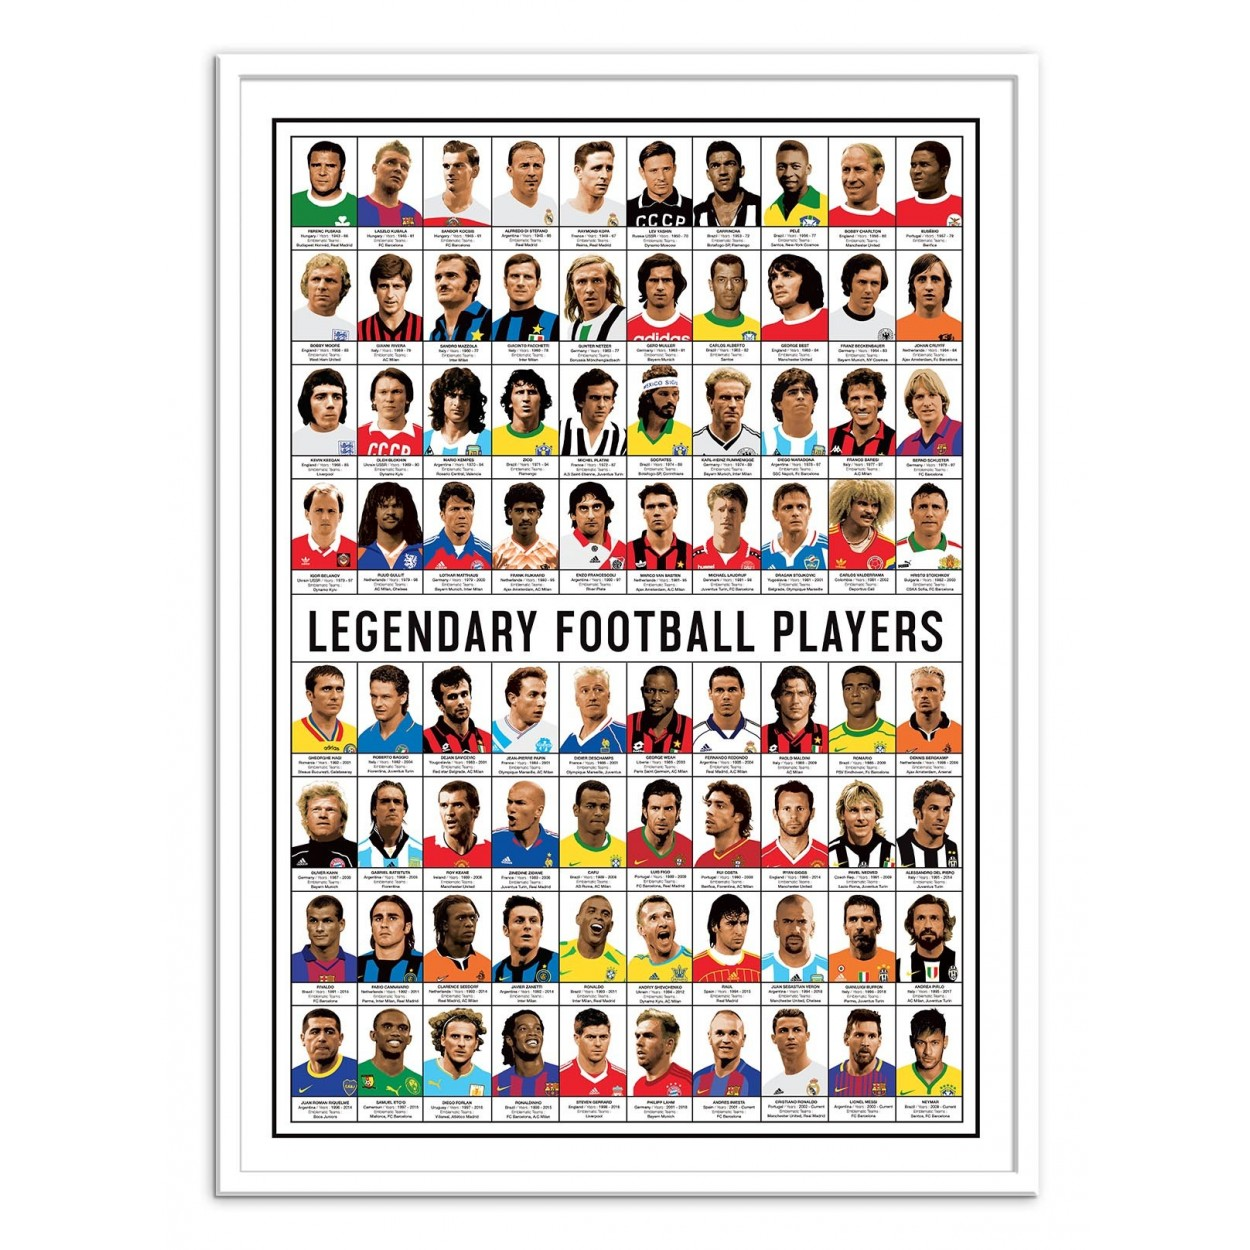 photo art poster frame and illustration of football stars players. Black Bedroom Furniture Sets. Home Design Ideas